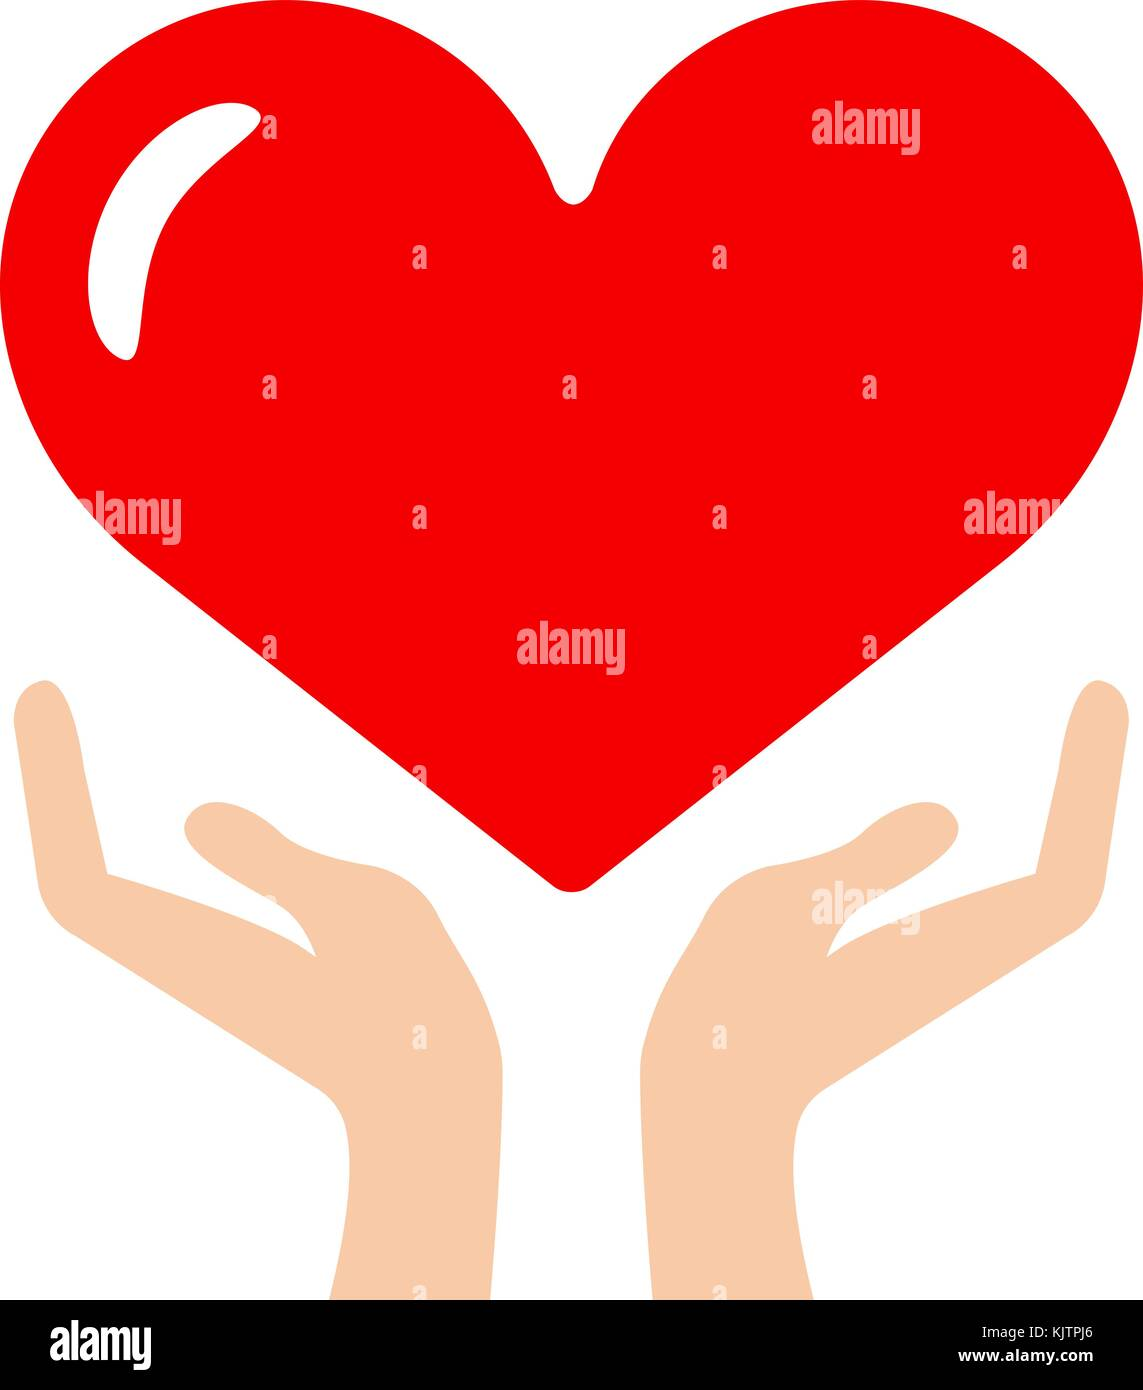 Heart in hand Icon - Stock Image